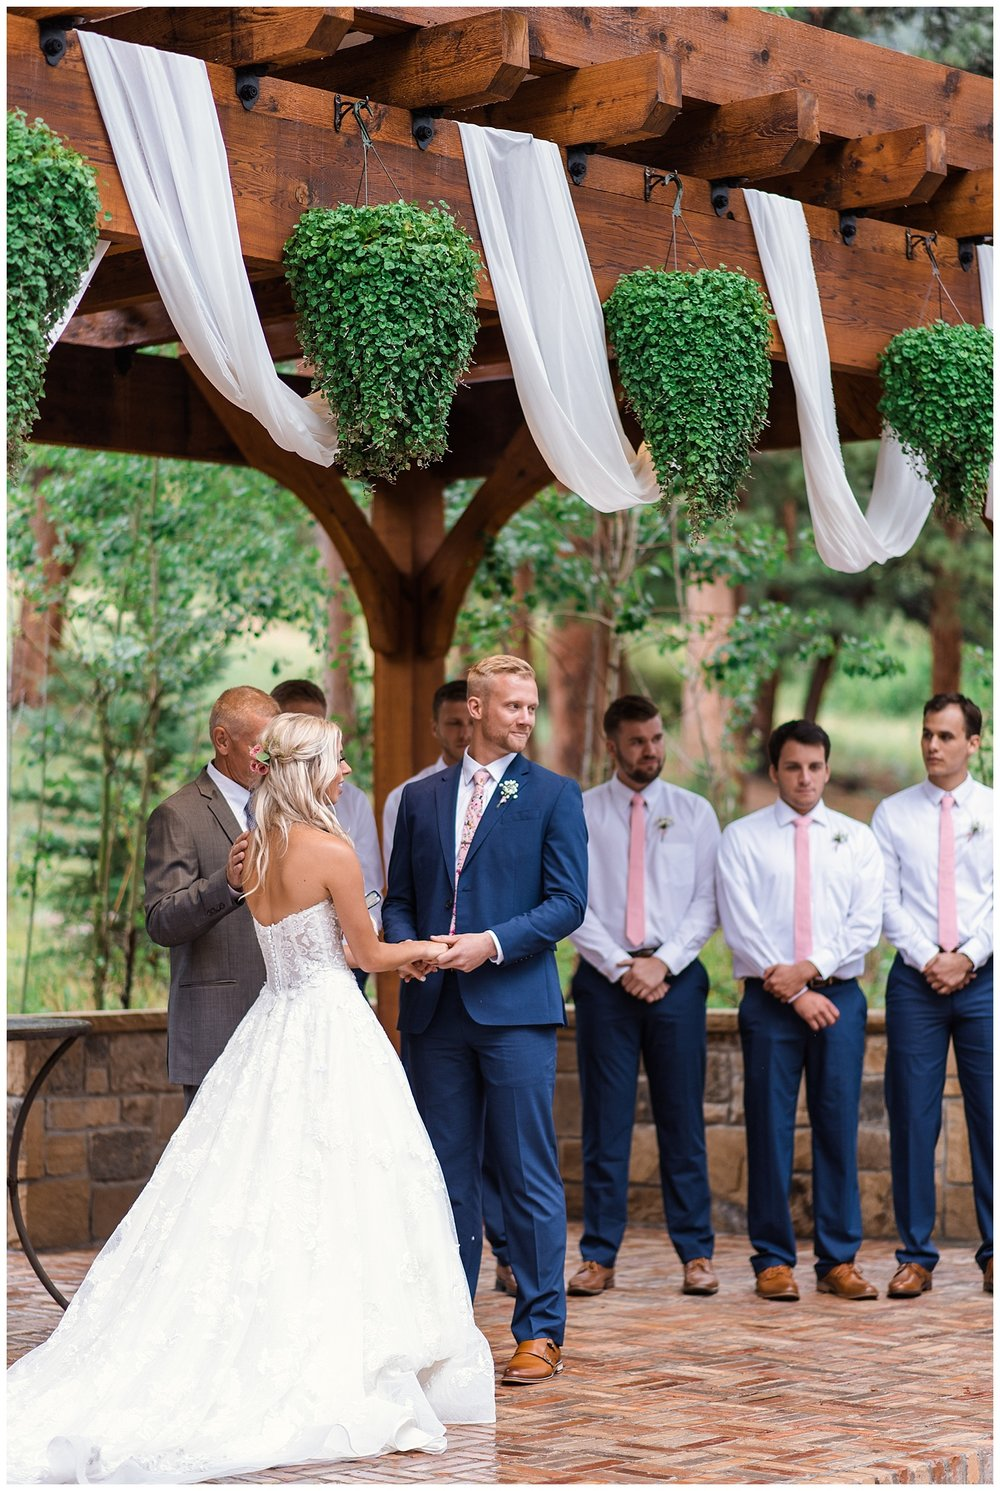 wedding ceremony in estes, Della Terra Mountain Chateau wedding, Estes park wedding, estes park wedding photographer, Colorado wedding photographer, rocky mountain wedding photographer, intimate colorado wedding photographer, small wedding photographer colorado,